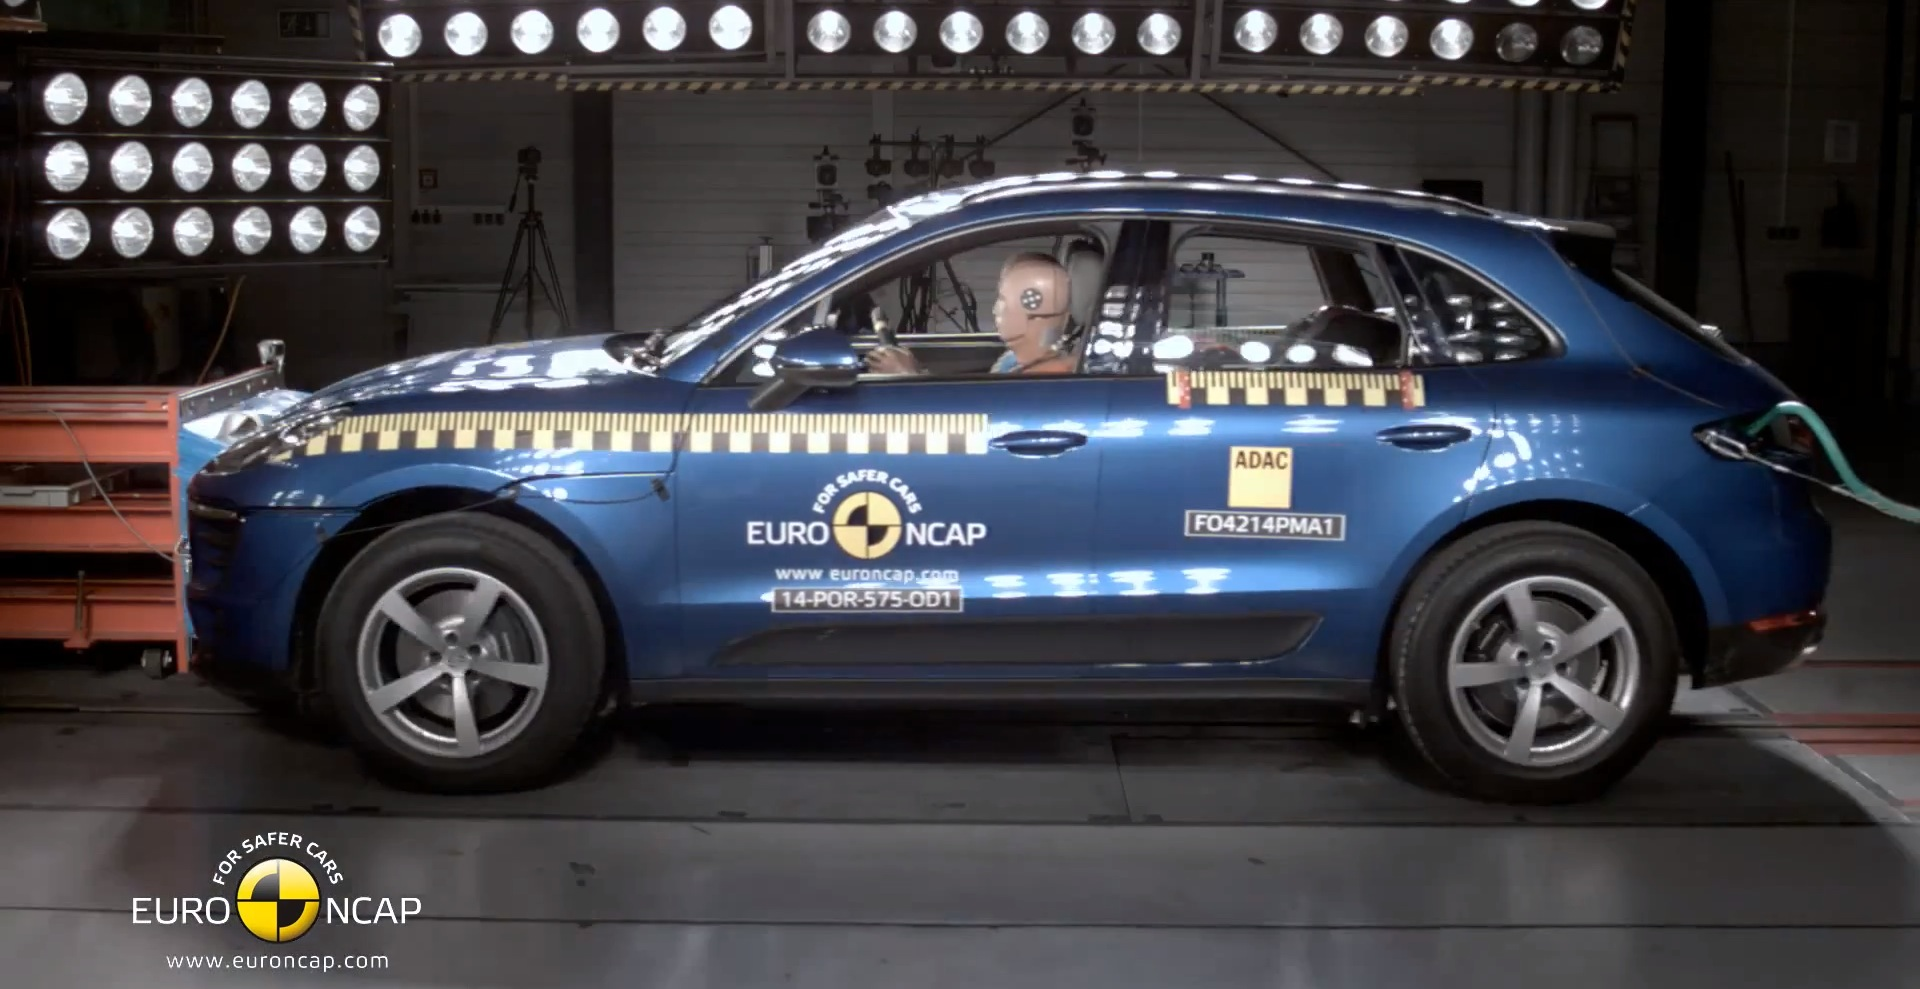 Porsche Macan Gets 5-Star Safety Rating from Euro NCAP - autoevolution